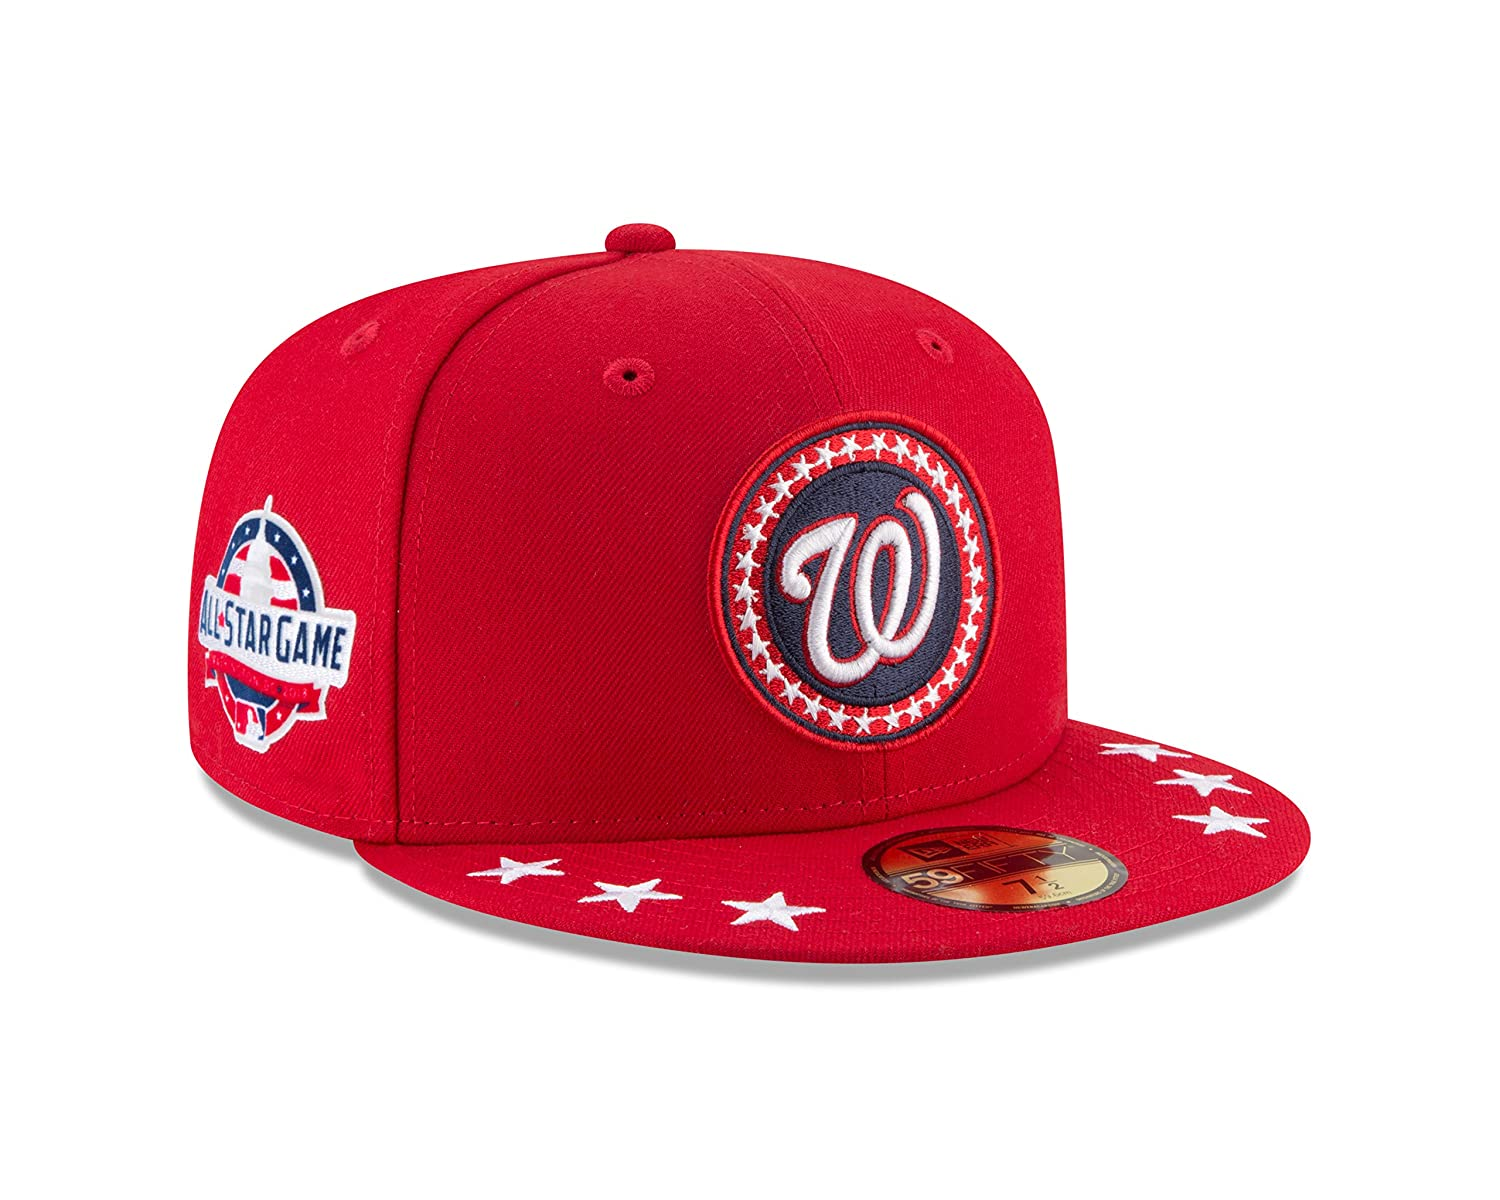 finest selection e44ca 0f68c Amazon.com   New Era Washington Nationals 2018 MLB All-Star Workout  On-Field 59FIFTY Fitted Hat - Navy (7 1 8) (7 3 4)   Sports   Outdoors